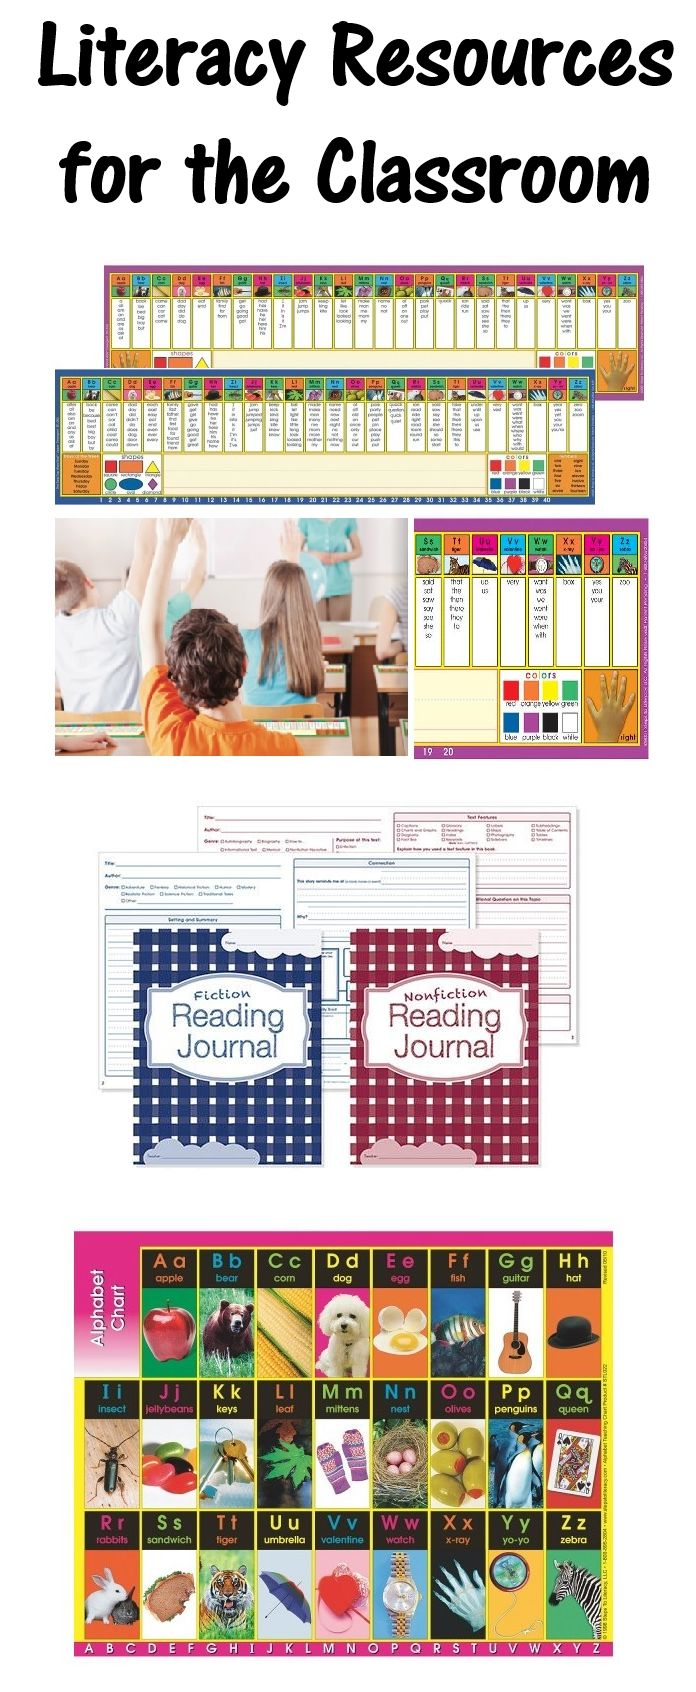 Learn 3 new resources that will help build literacy skills in the classroom!